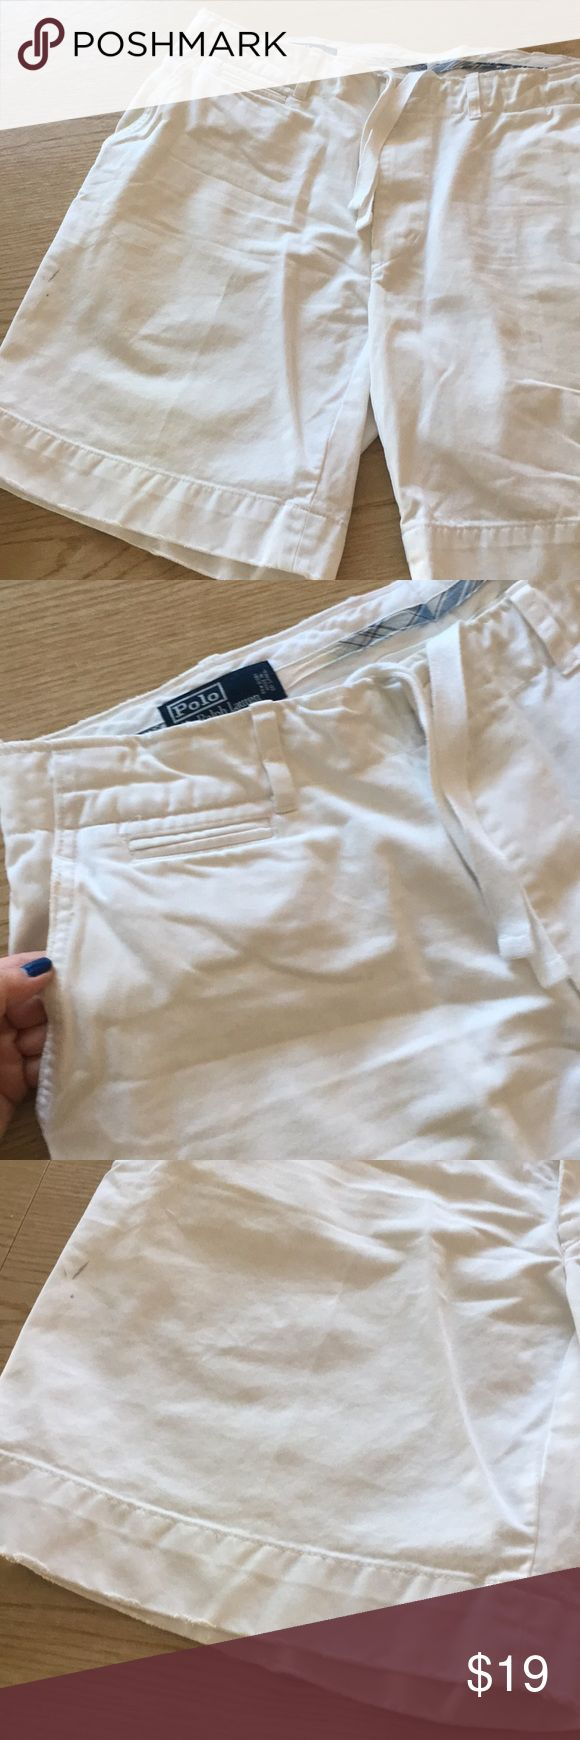 "POLO by RALPH LAUREN POLO by RALPH LAUREN Mens Shorts. Size 38. White Twill 100% Cotton. Only wore a few times but does show some signs of wear. Destressed Hem Intentional. Zip Fly with Drawstring Interior Waist. 11"" Rise. 9 1/2"" Inseam. Polo by Ralph Lauren Shorts"